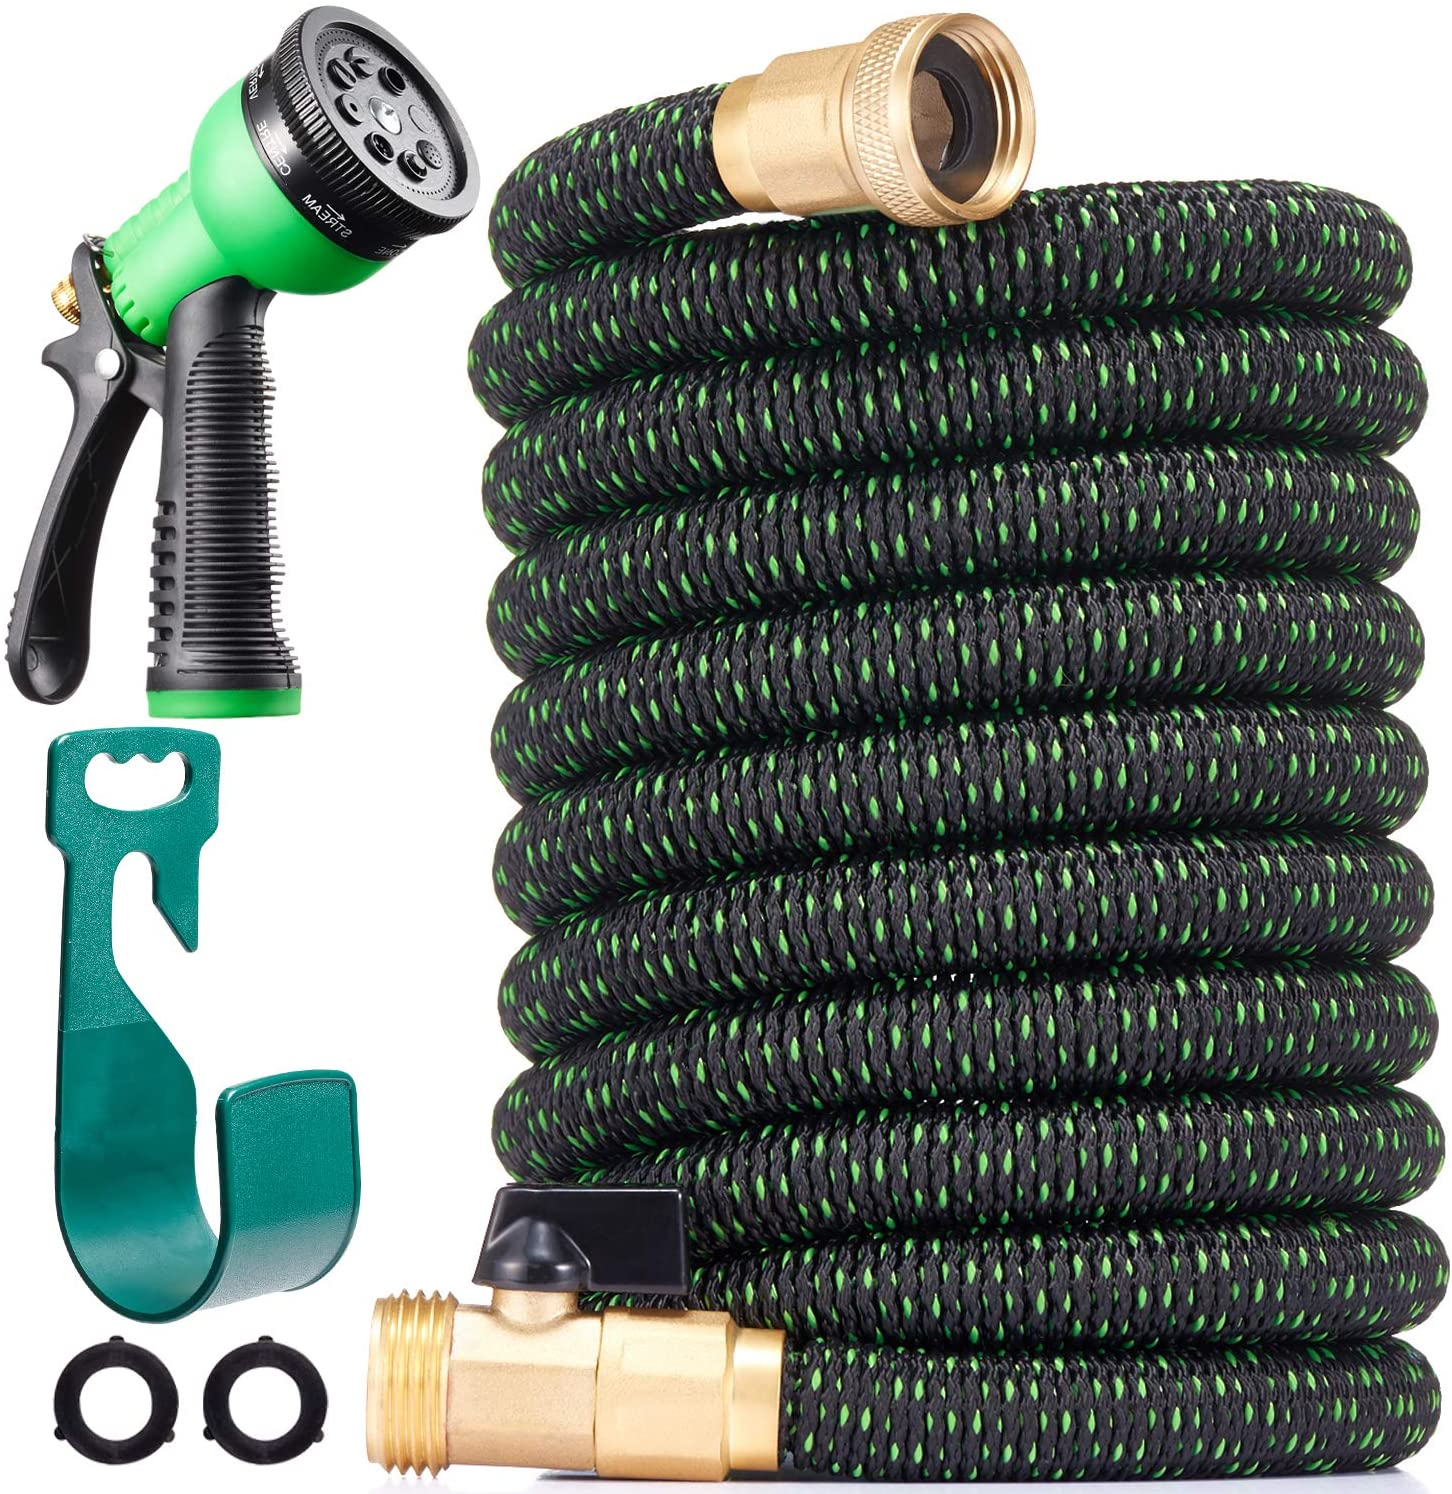 100ft Expandable Garden Hose - 2021 Upgraded Expanding Water Hoses with Spray Nozzle - Flexible Retractable Hose Pipe with Triple Latex Core, 3/4